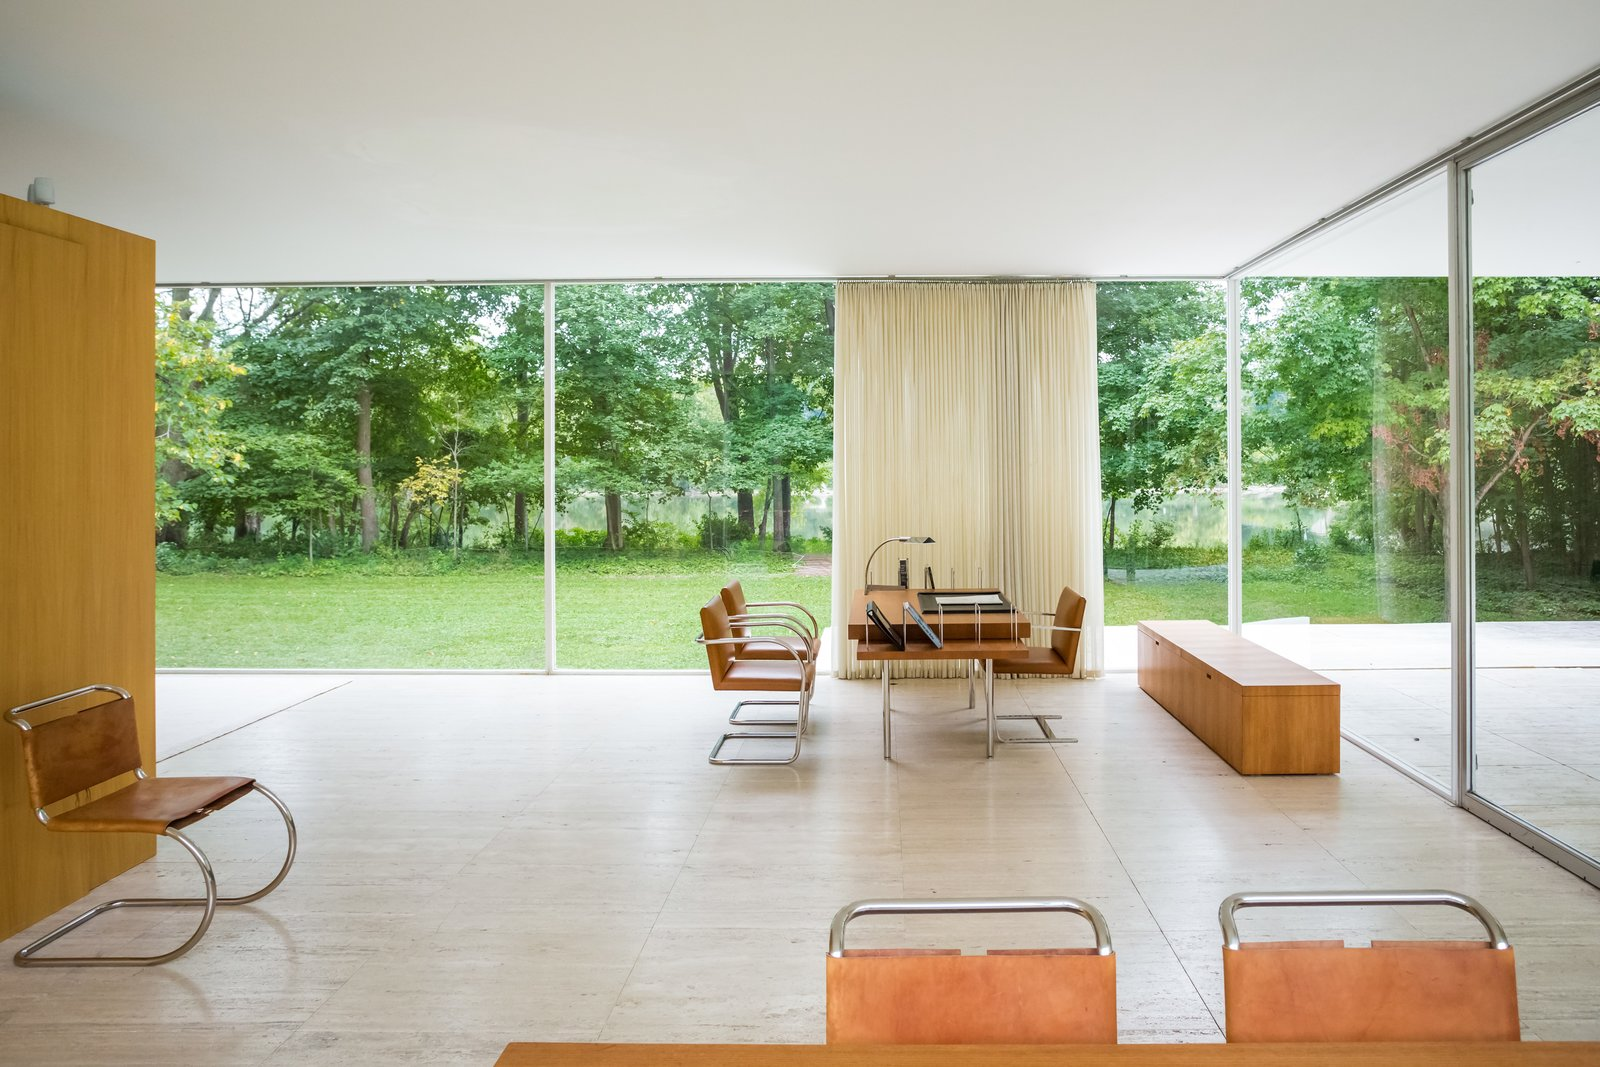 Farnsworth House by Ludwig Mies van der Rohe interior